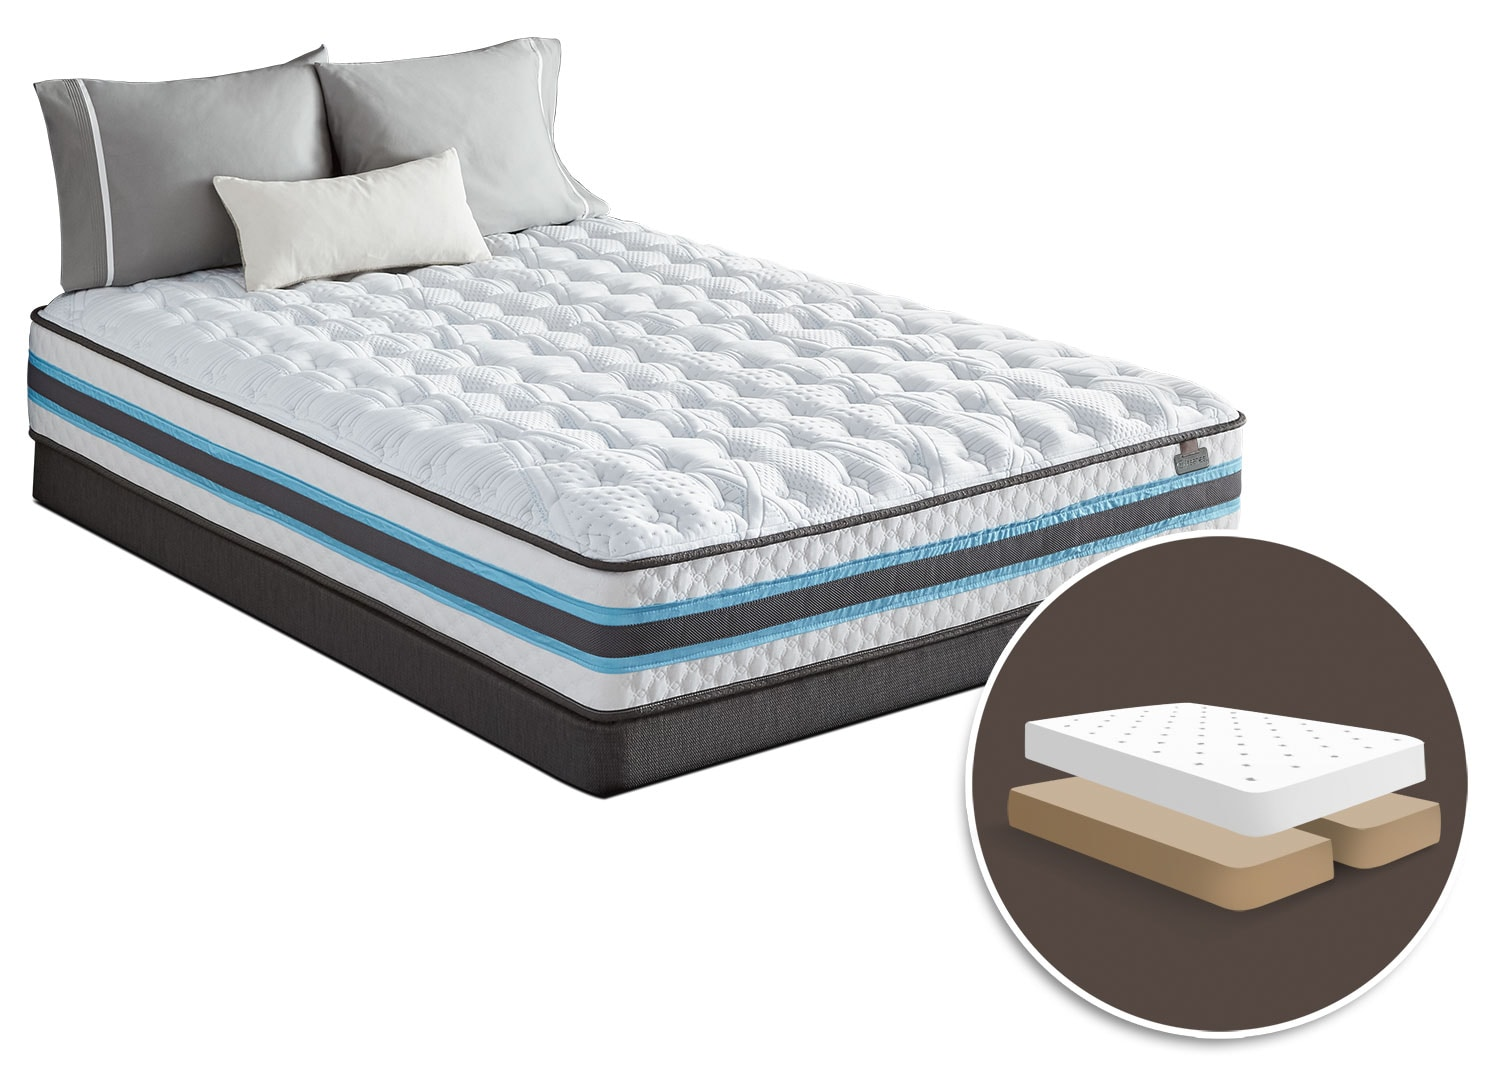 Mattresses and Bedding - Serta iSeries® Atmosphere Tight-Top Firm Split Queen Mattress Set